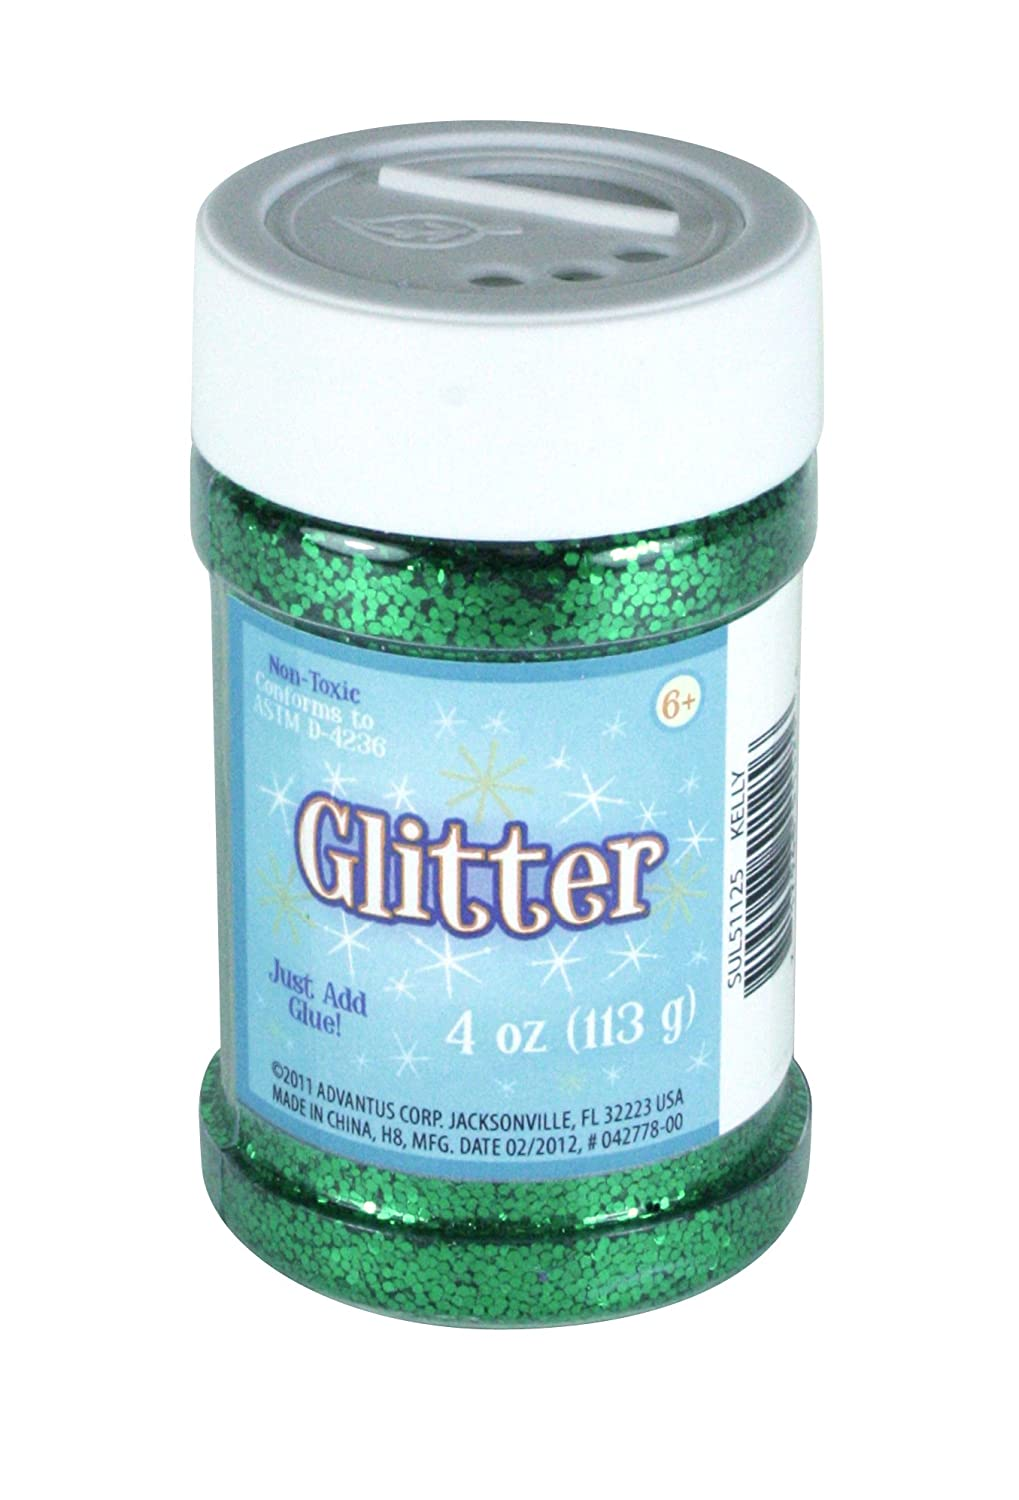 Sulyn Kelly Green Glitter Jar, 4 ounces, Non-Toxic, Reusable Jar with Easy to Use Shaker Top, Multiple Slot Openings for Easy Dispensing and Mess Reduction, Green Glitter, SUL51125